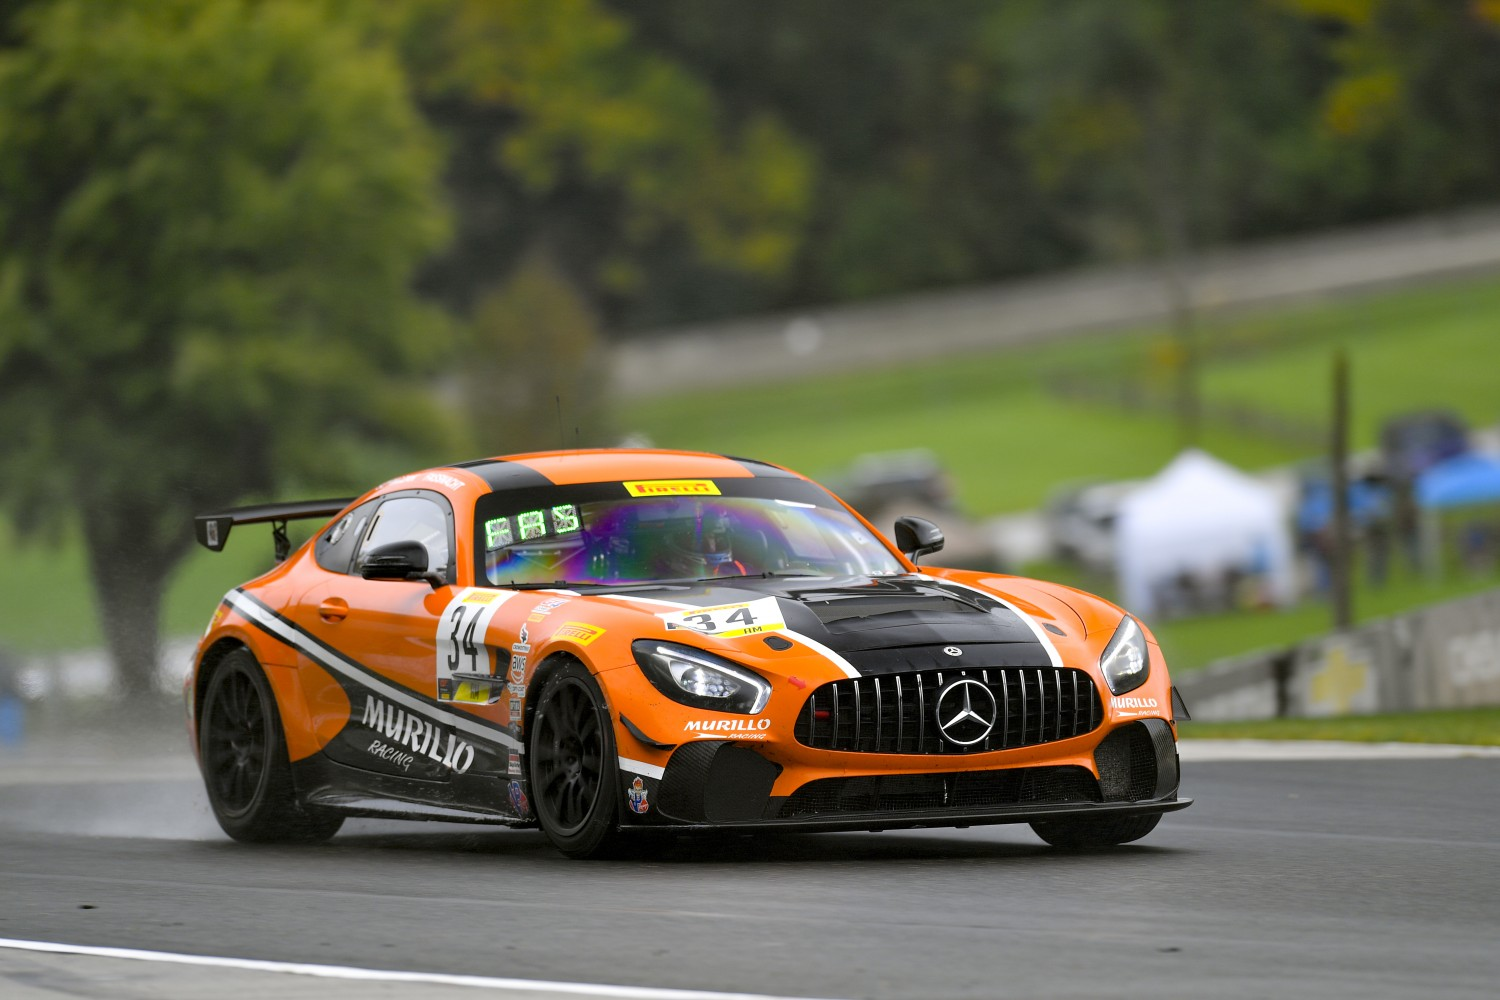 #34 Mercedes-AMG GT4 of Matthew Fassnacht and Christian Szymczak with Murillo Racing  Road America World Challenge America , Elkhart Lake WI | Gavin Baker/SRO